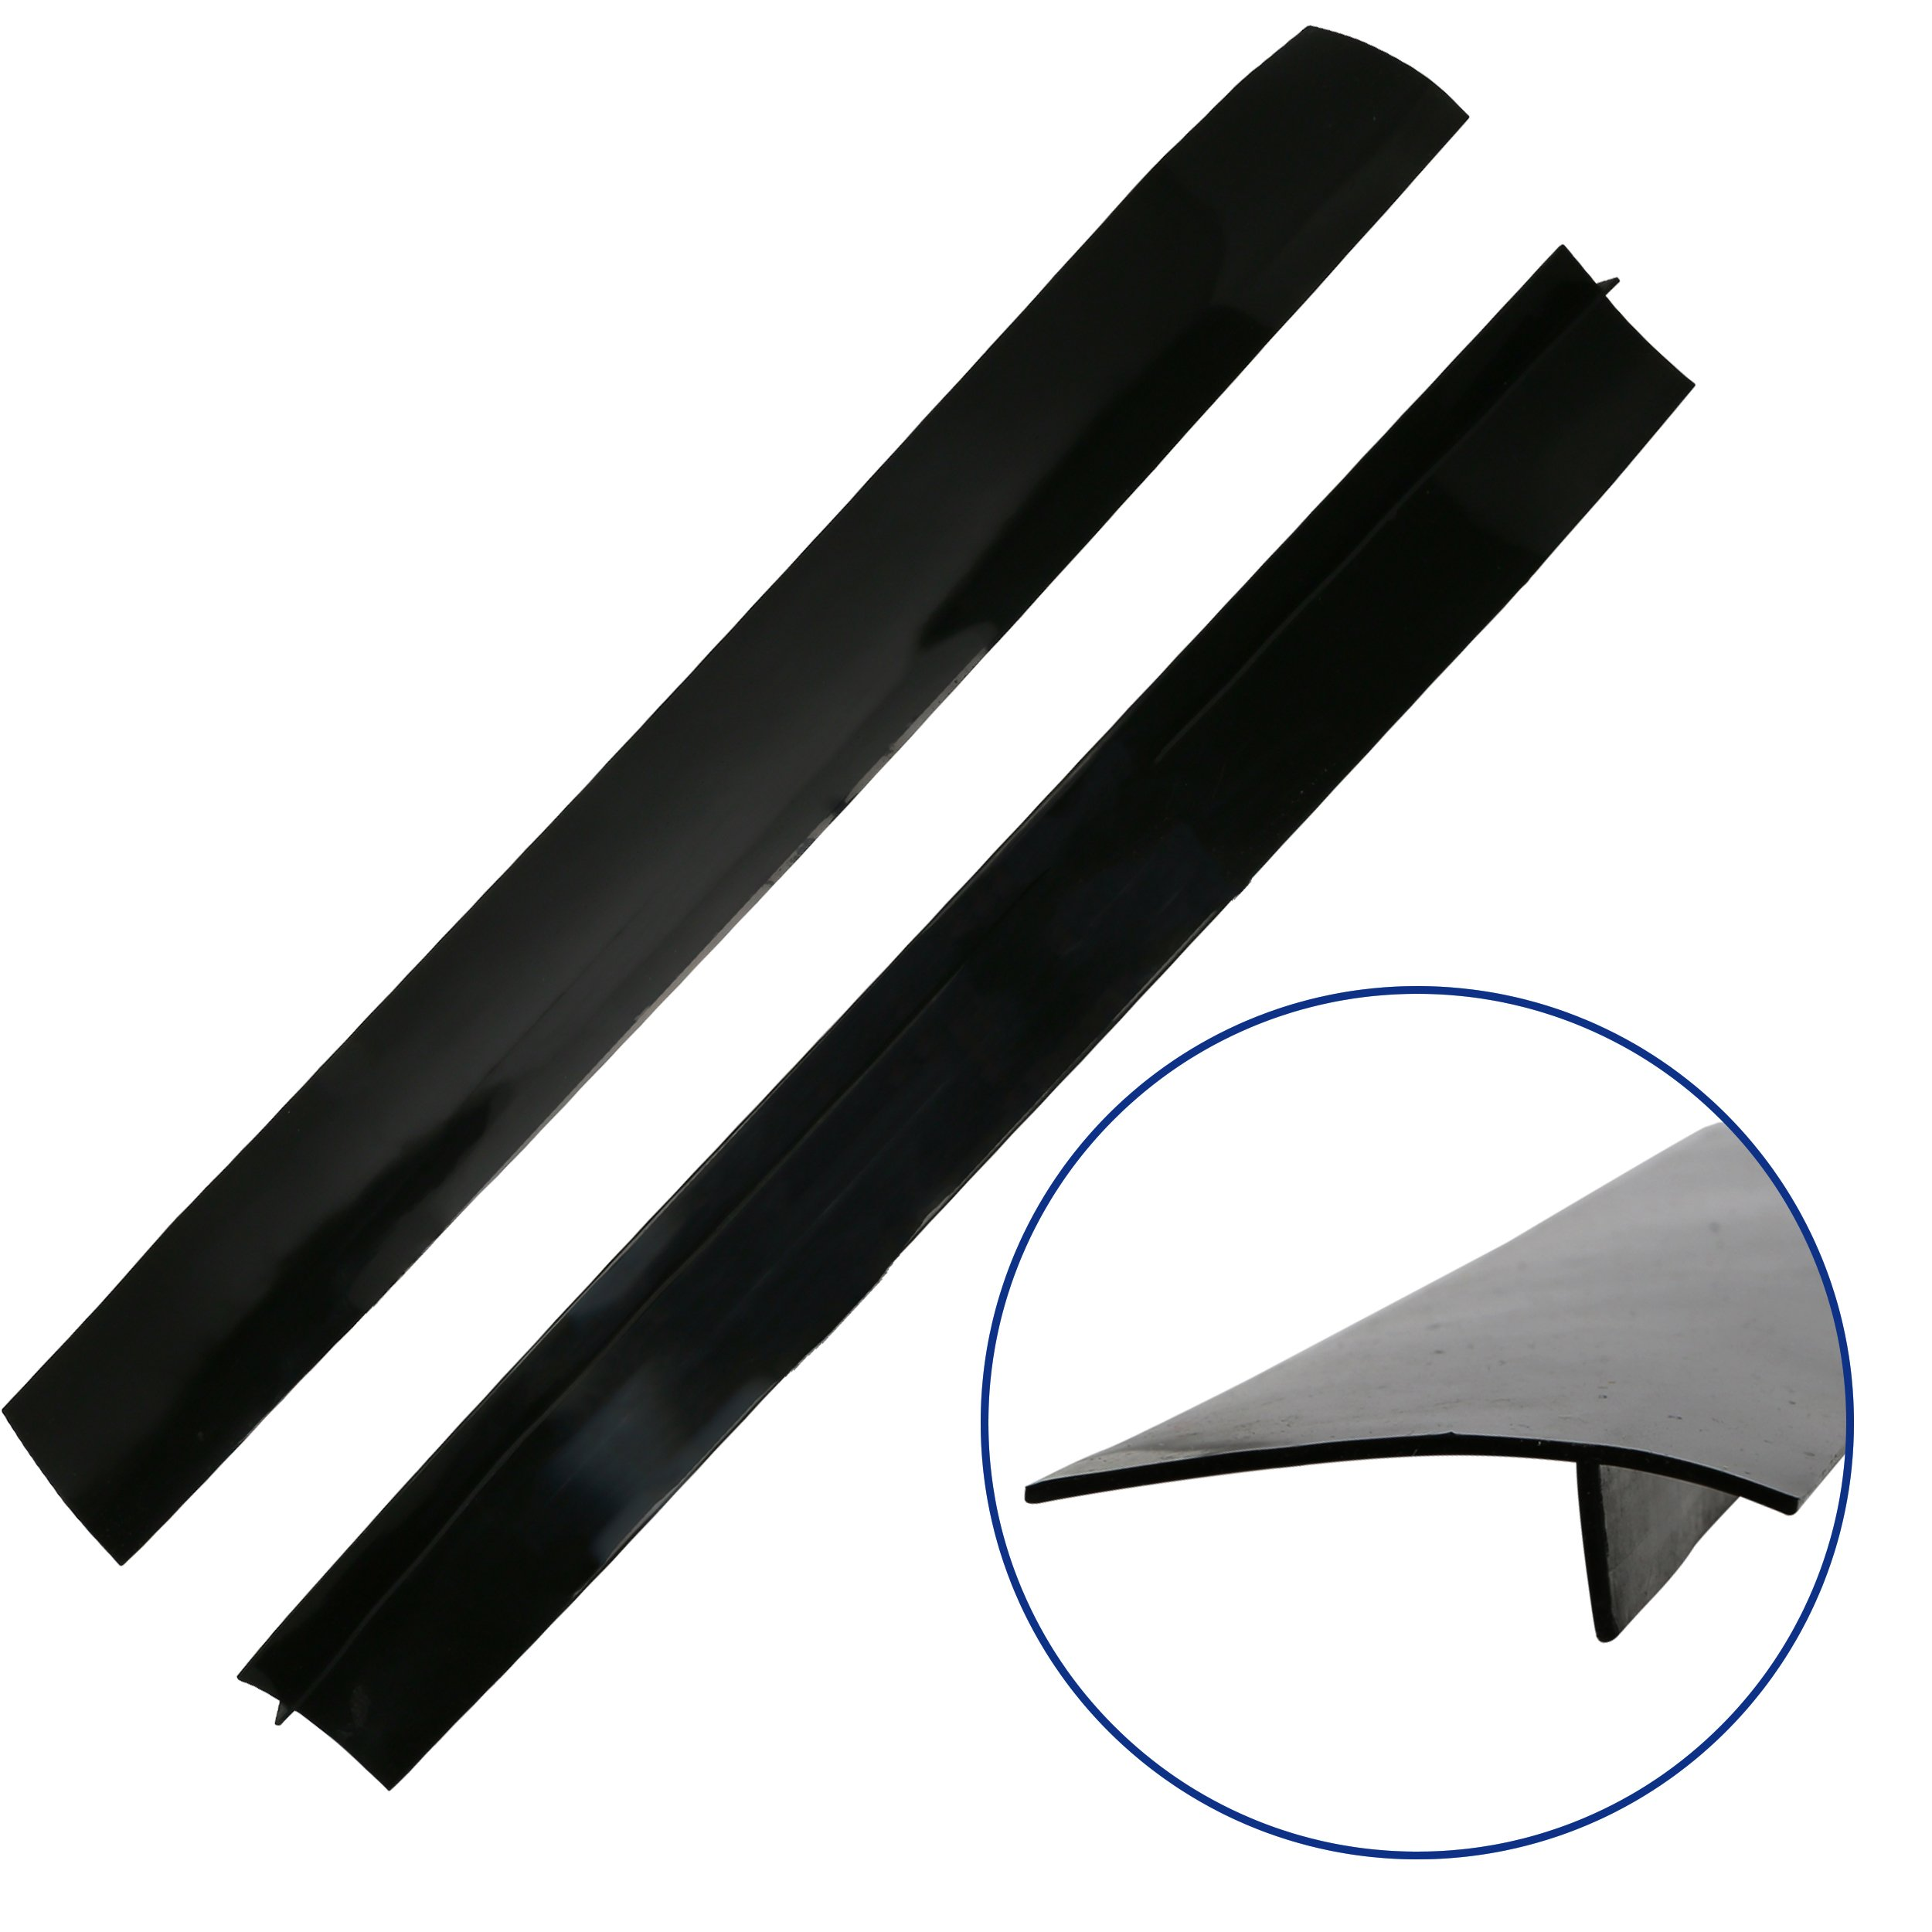 Stove Gap Covers, Set of 2 Black, Flexible Silicone Gap Covers, Seal the Gap Next to your Stove, McClure's Gap Caps